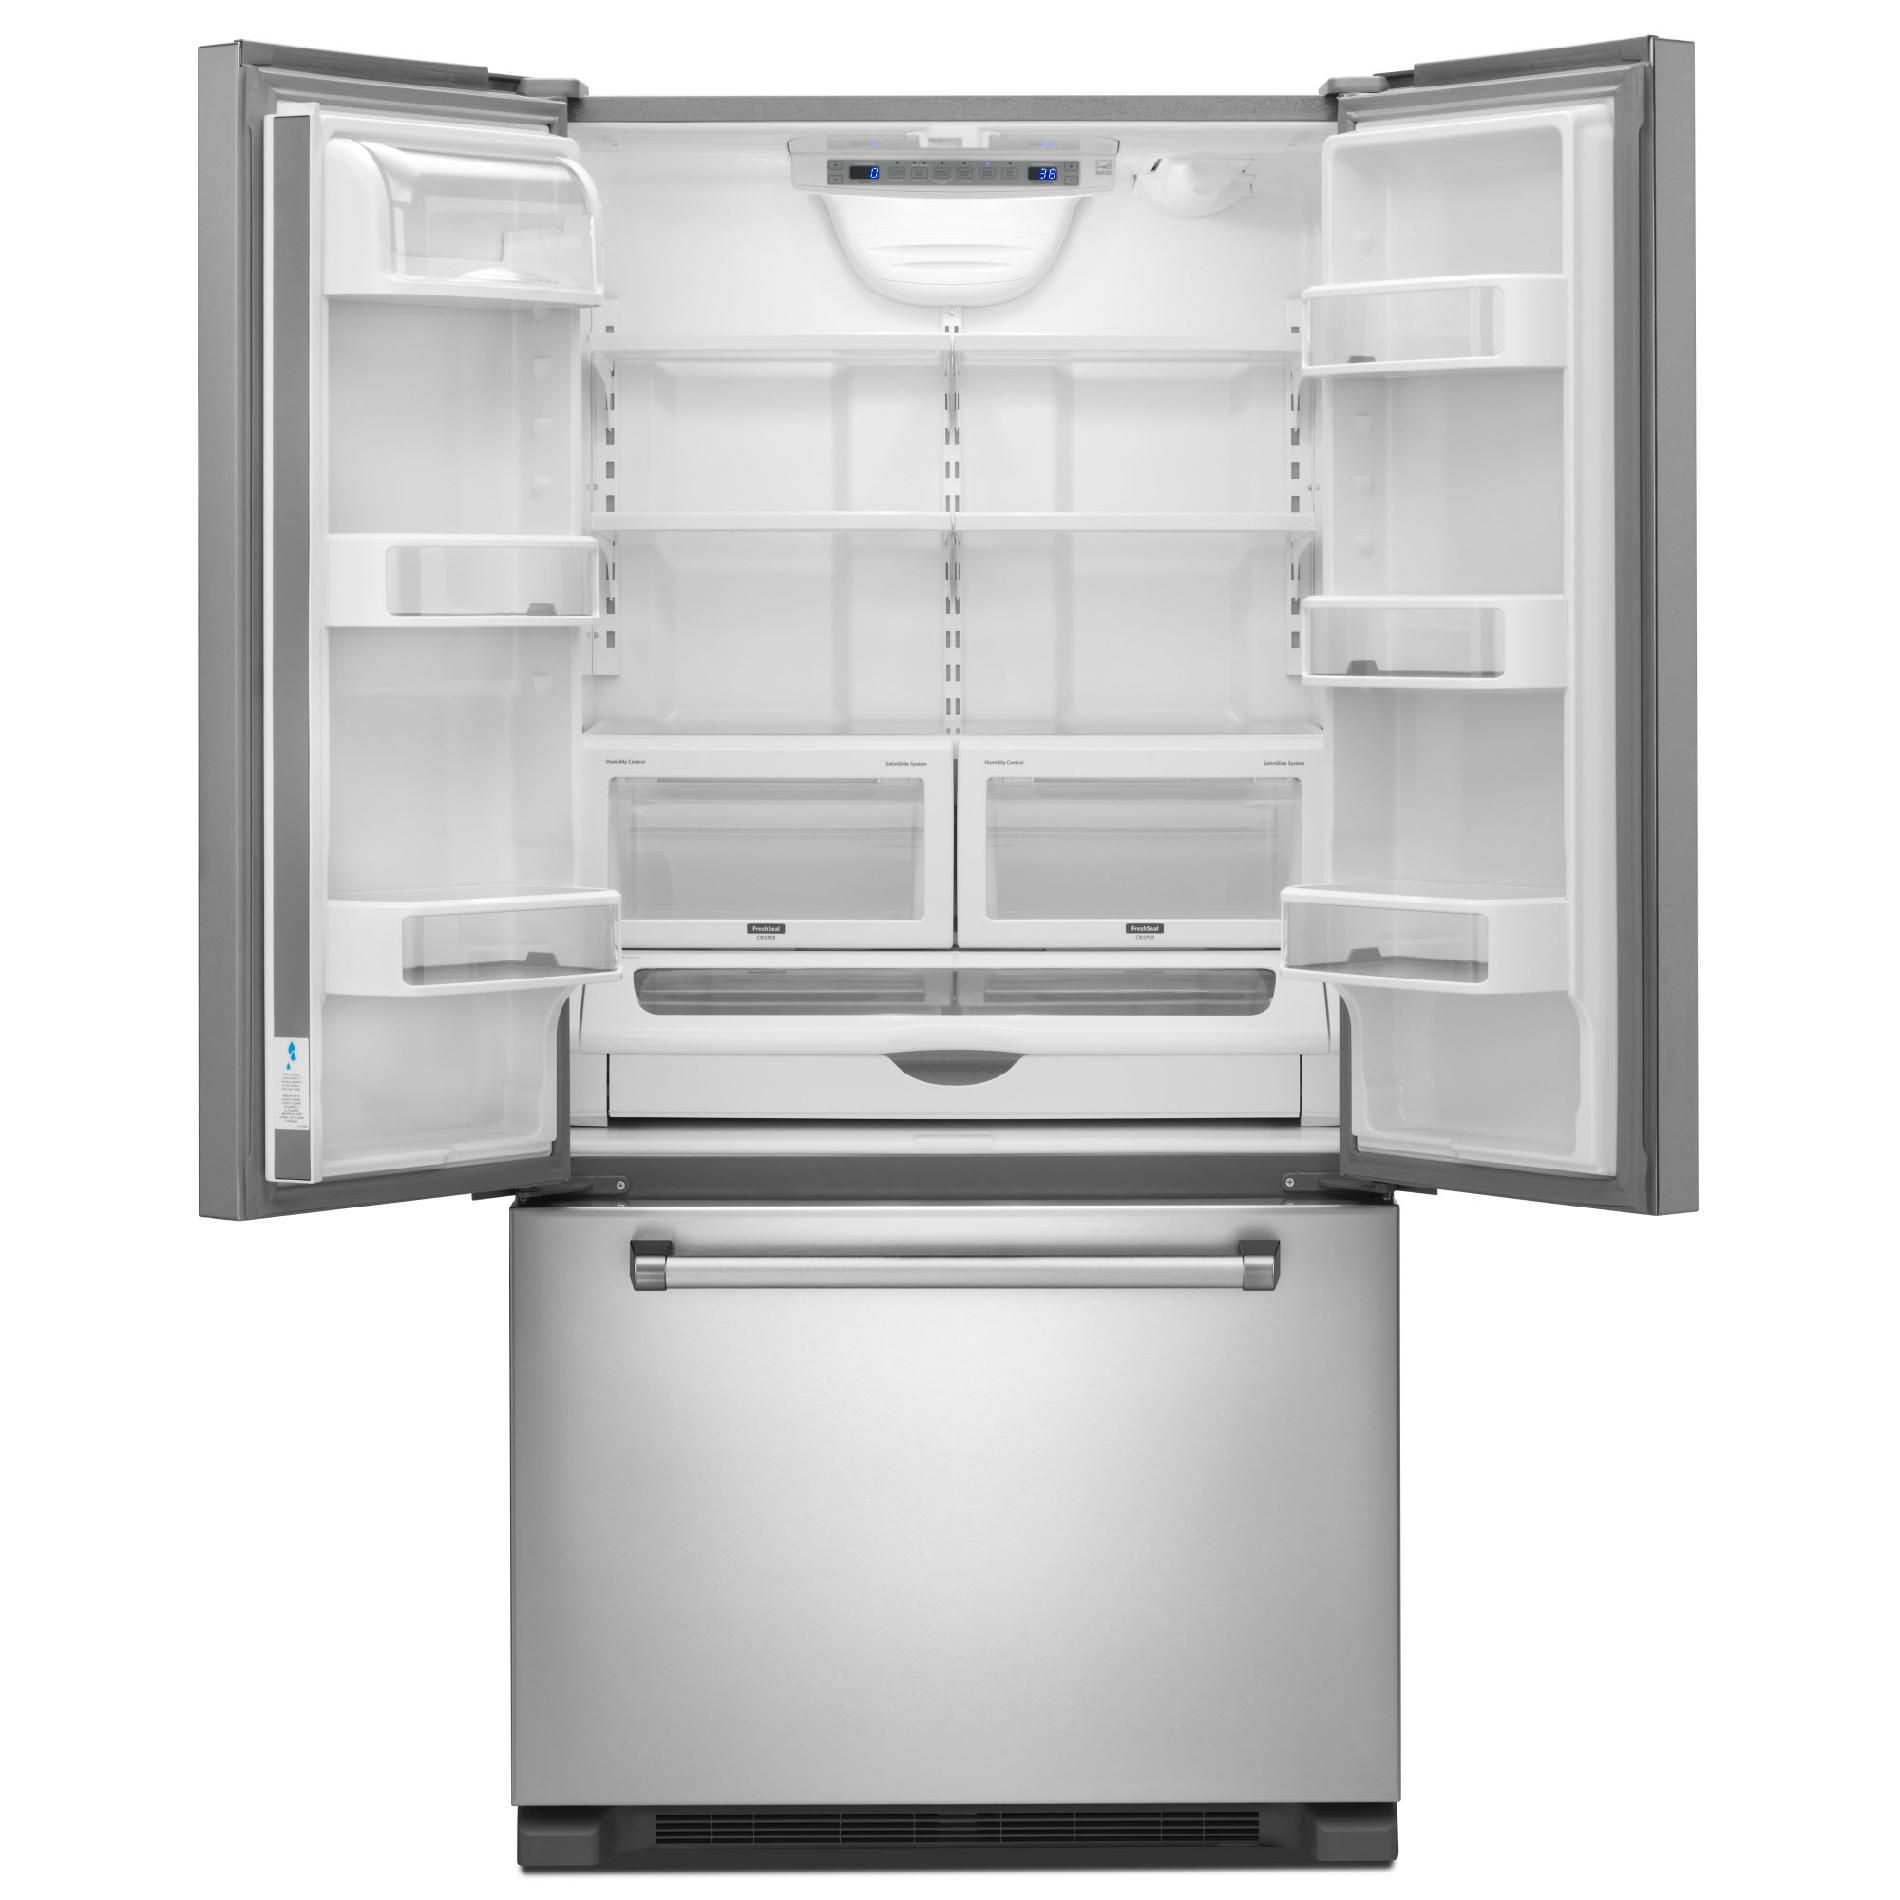 KitchenAid 21.9 Cu. Ft. Counter-Depth Bottom-Freezer Refrigerator